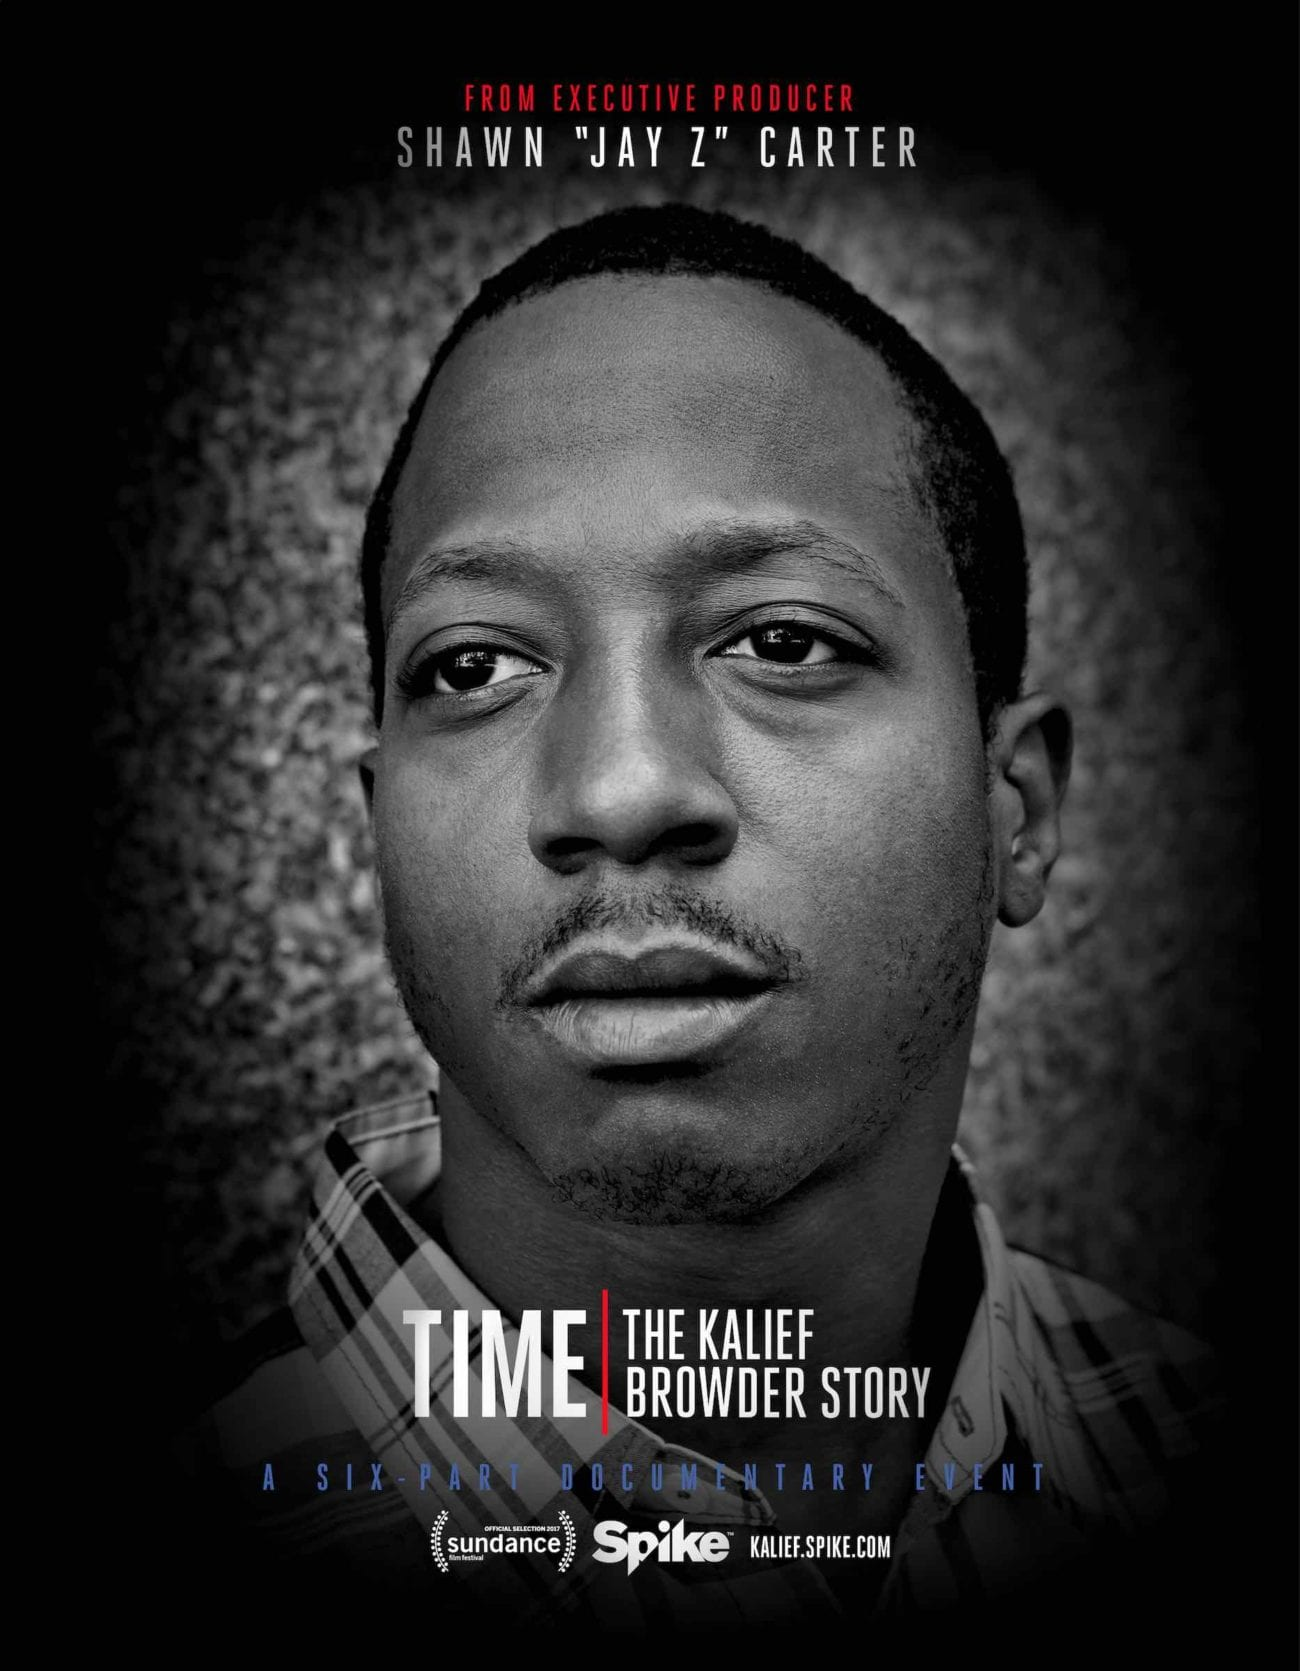 'The Kalief Browder Story' documents the insane reality of how a young man died because of a backpack. Here's what you need to know.